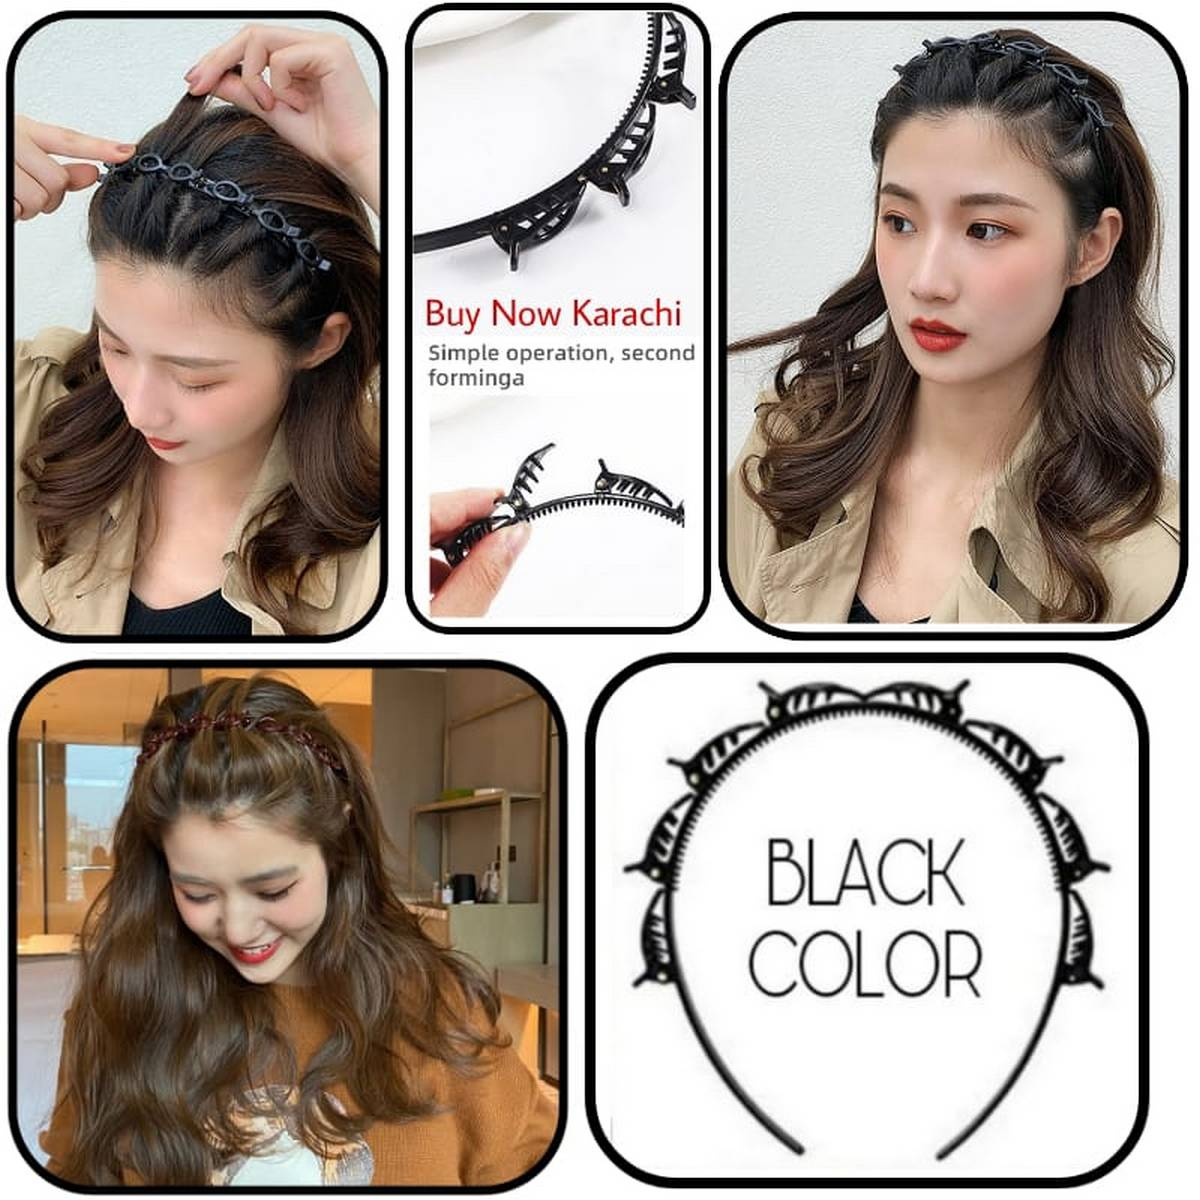 Black Braider Hair Style twister hair band headband Double Bangs Hairstyle Hairpin with clip hair styling new fashion Hairband Women girls